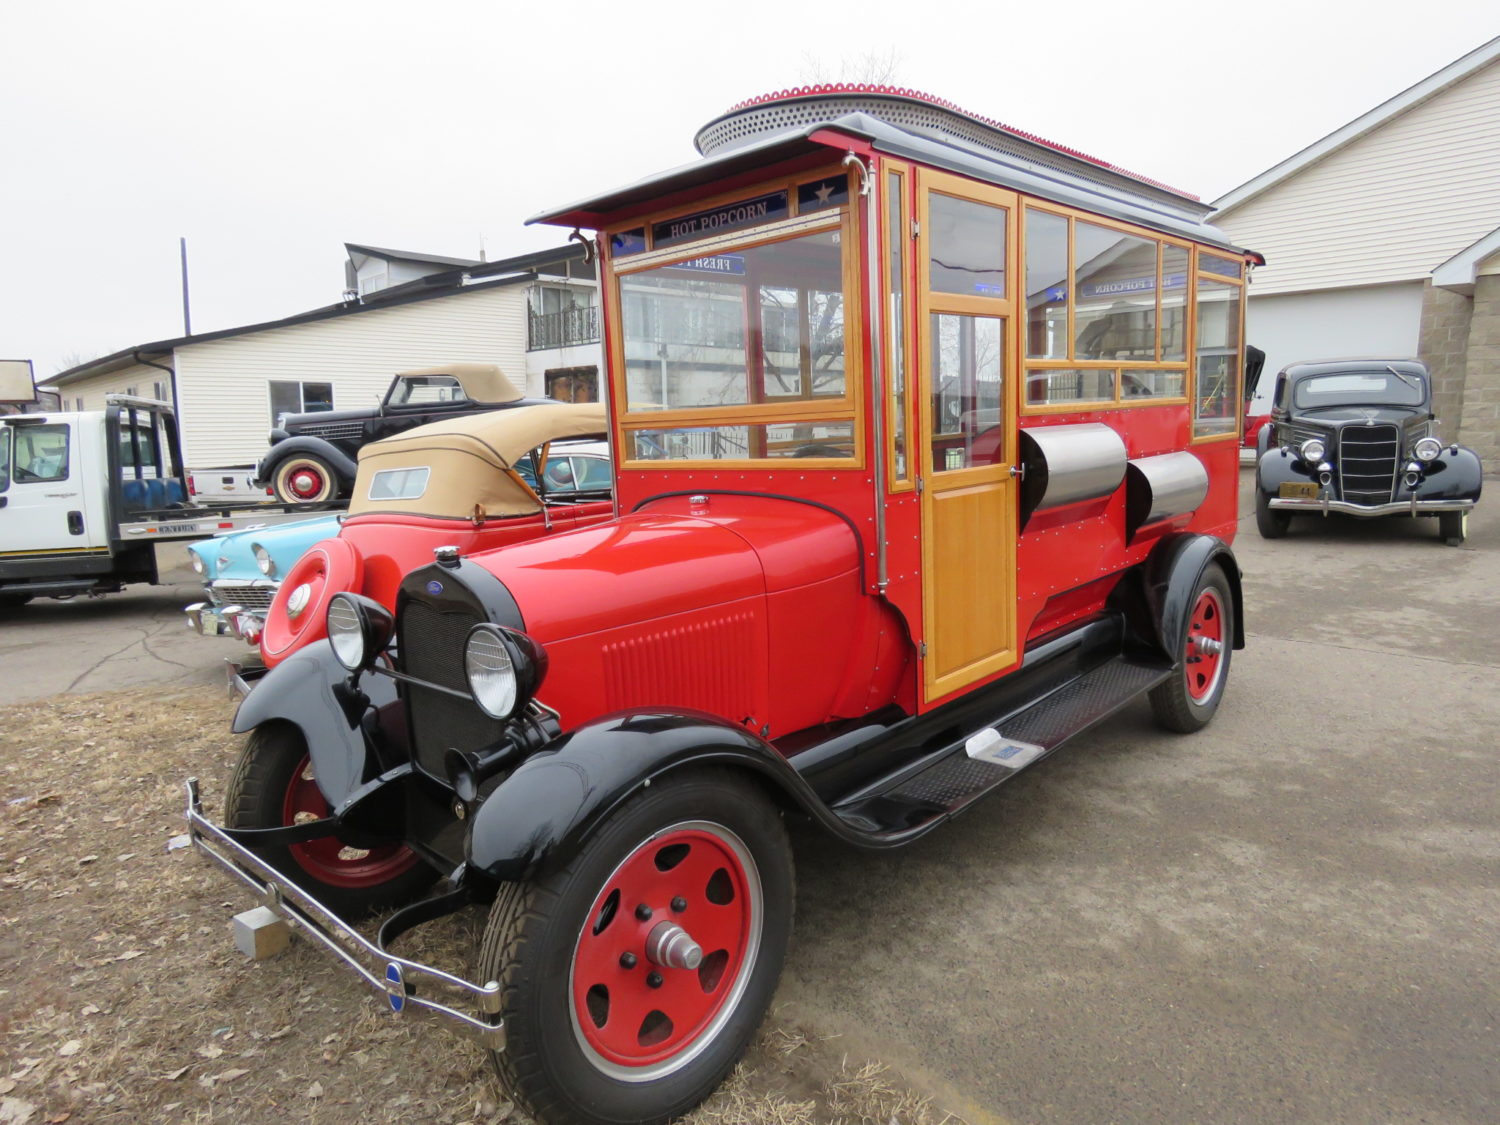 Fabulous Collector Cars, Parts, Memorabilia & More.. The Pellow Collection - image 2